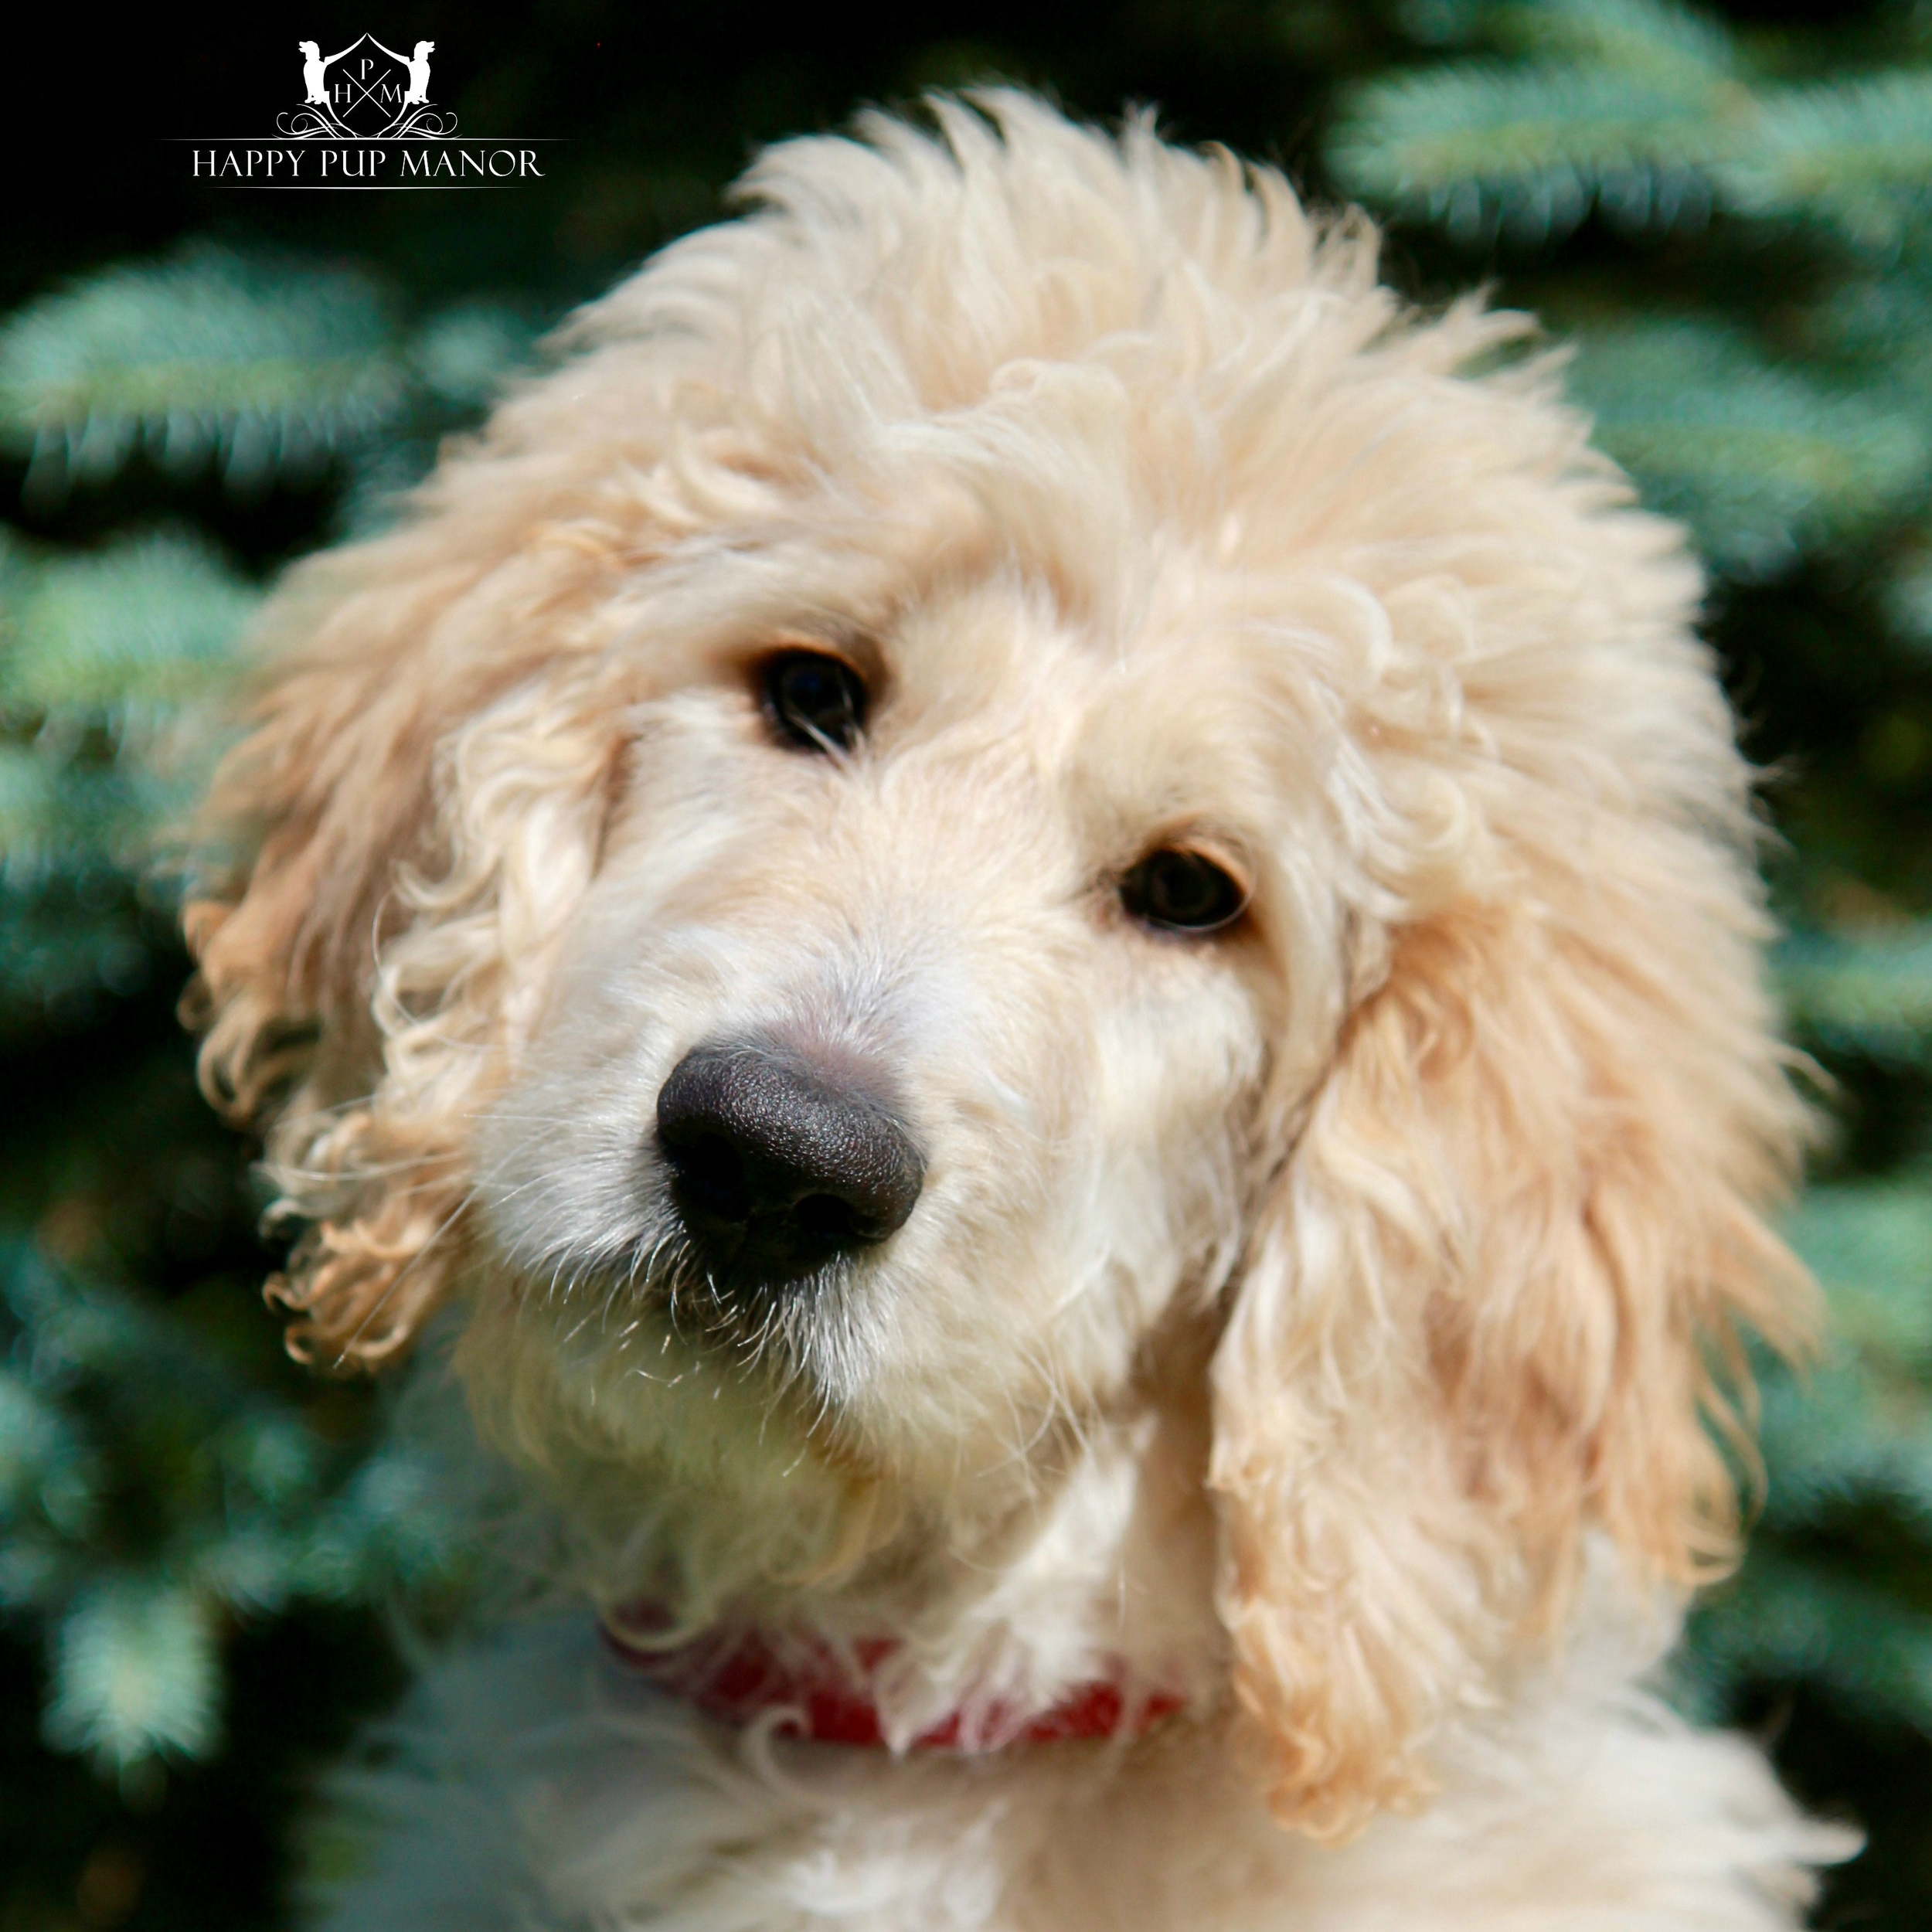 Ivy the Goldendoodle